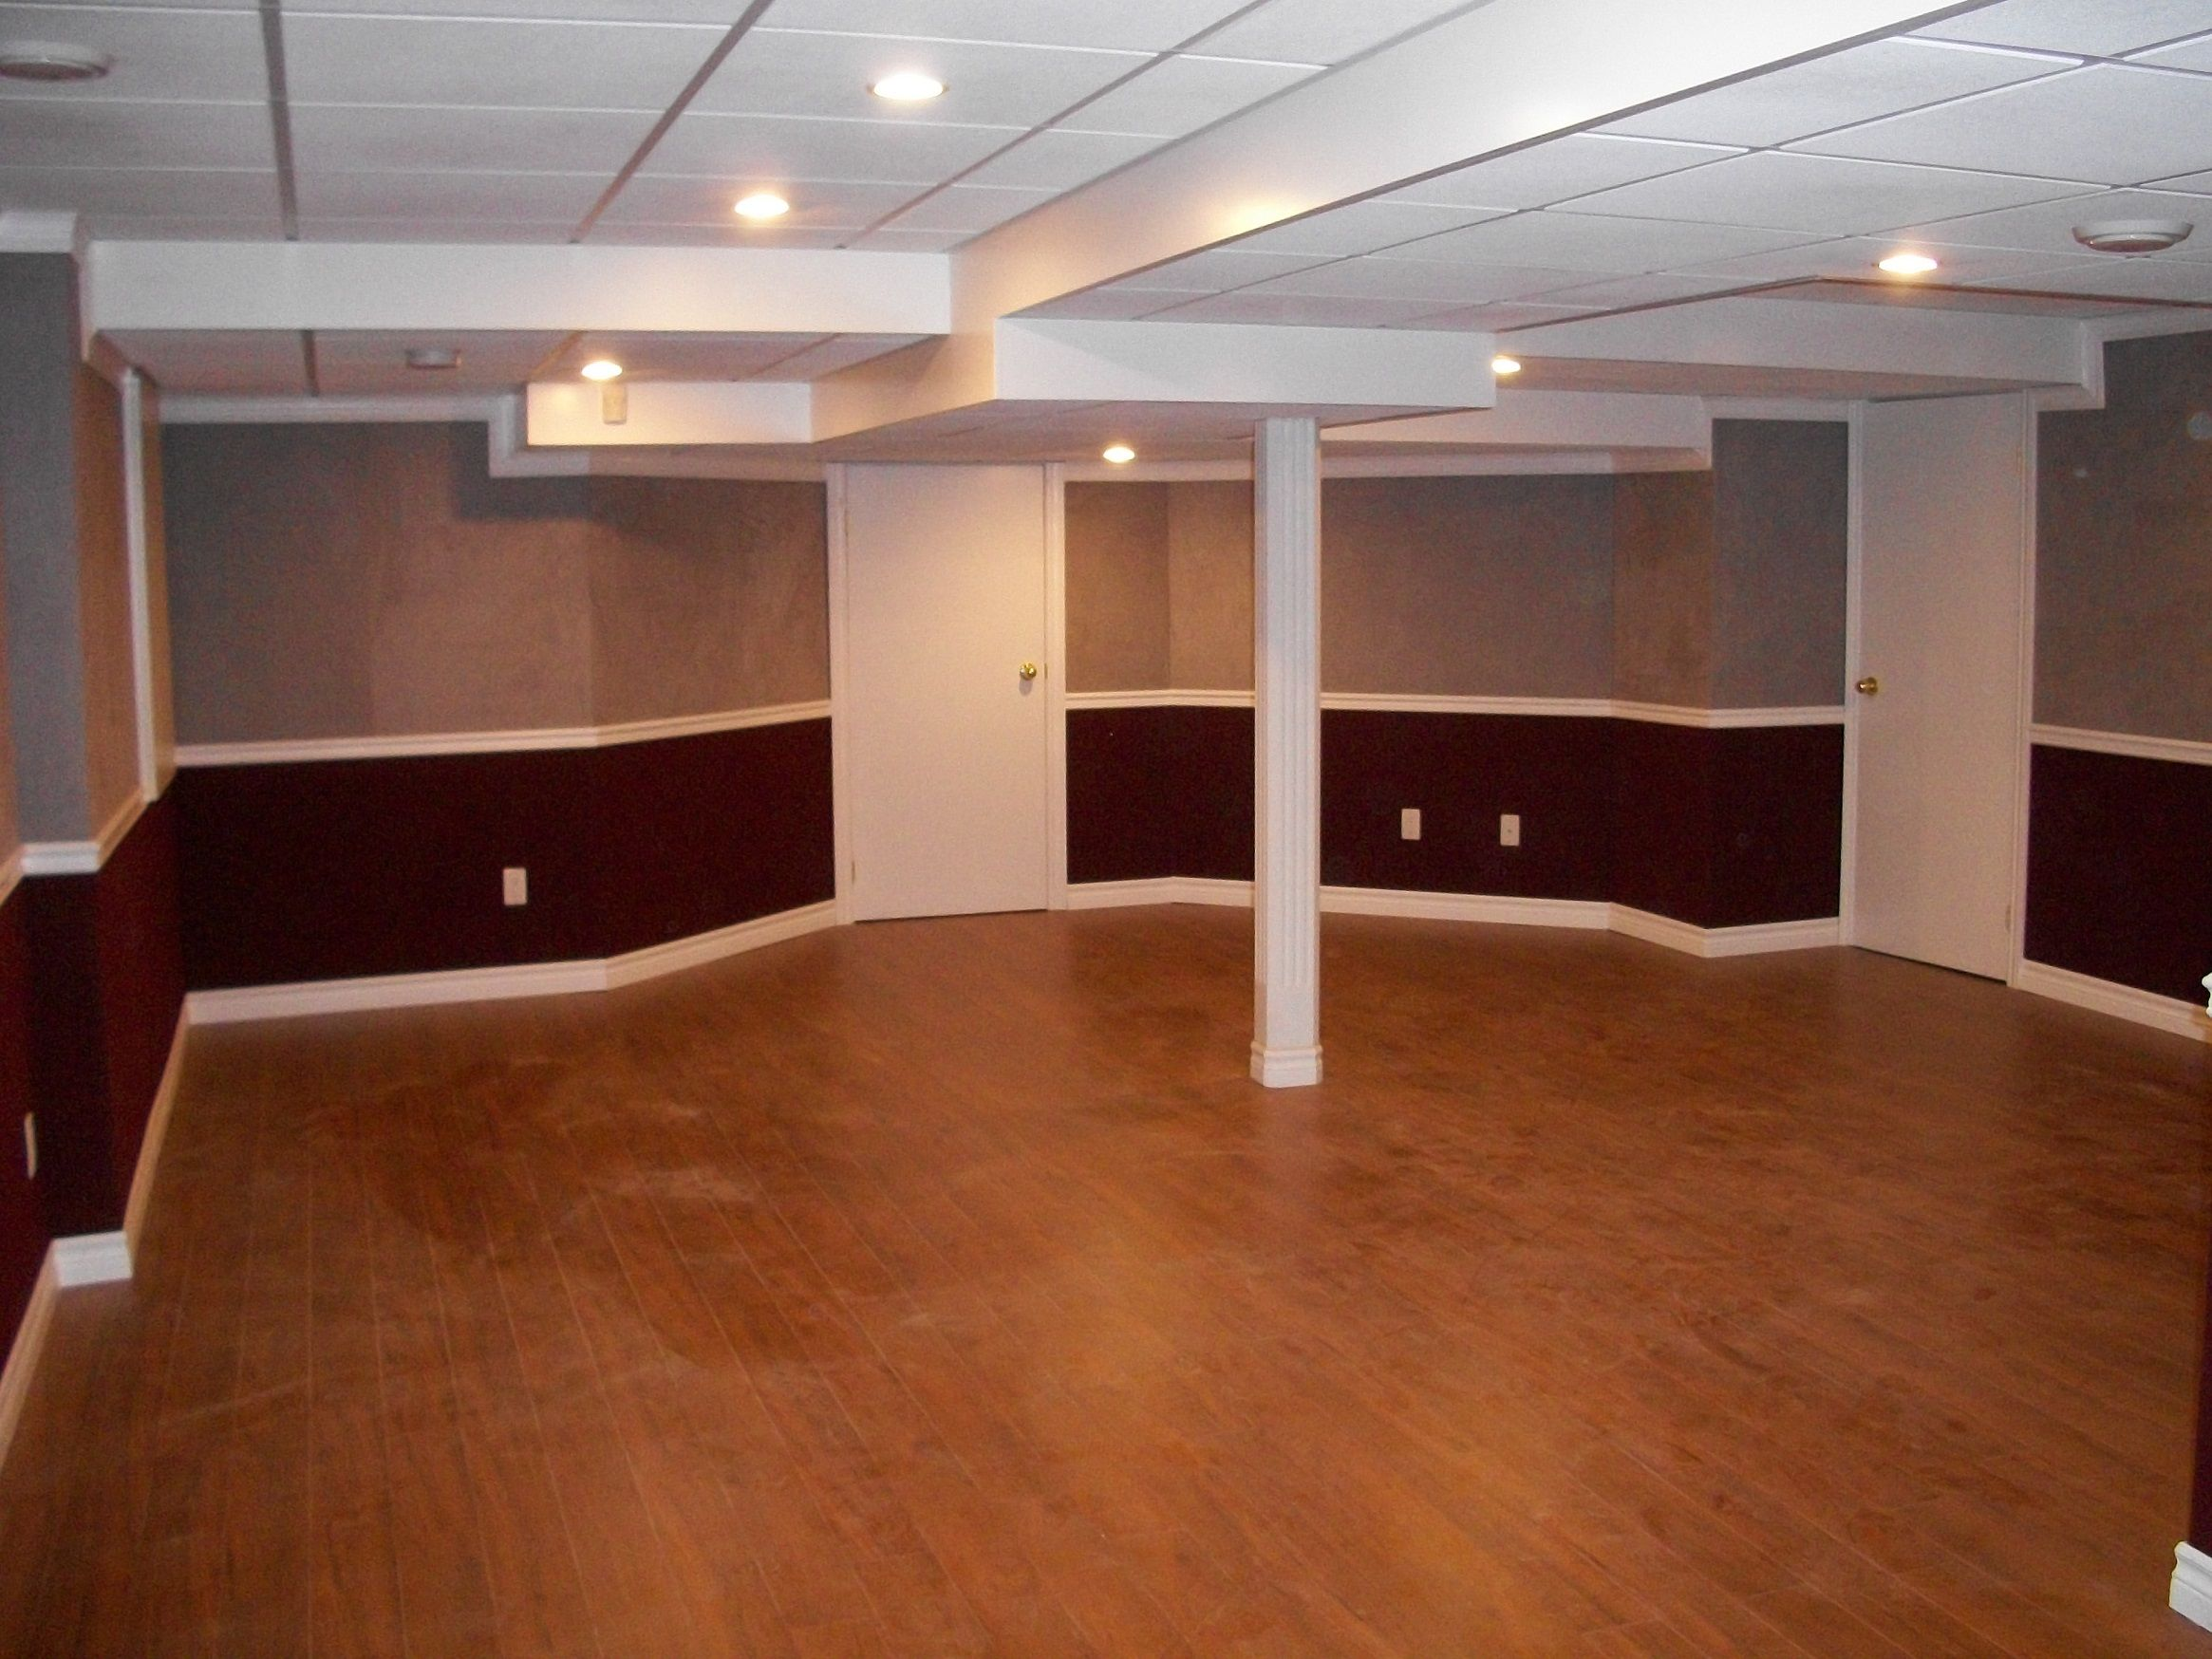 Basement: Diy Waterproof Basement Wall Panels And Removable Basement Wall  Panels With Insulated Basement Wall Panels Also How To Install Basement Wall  ...